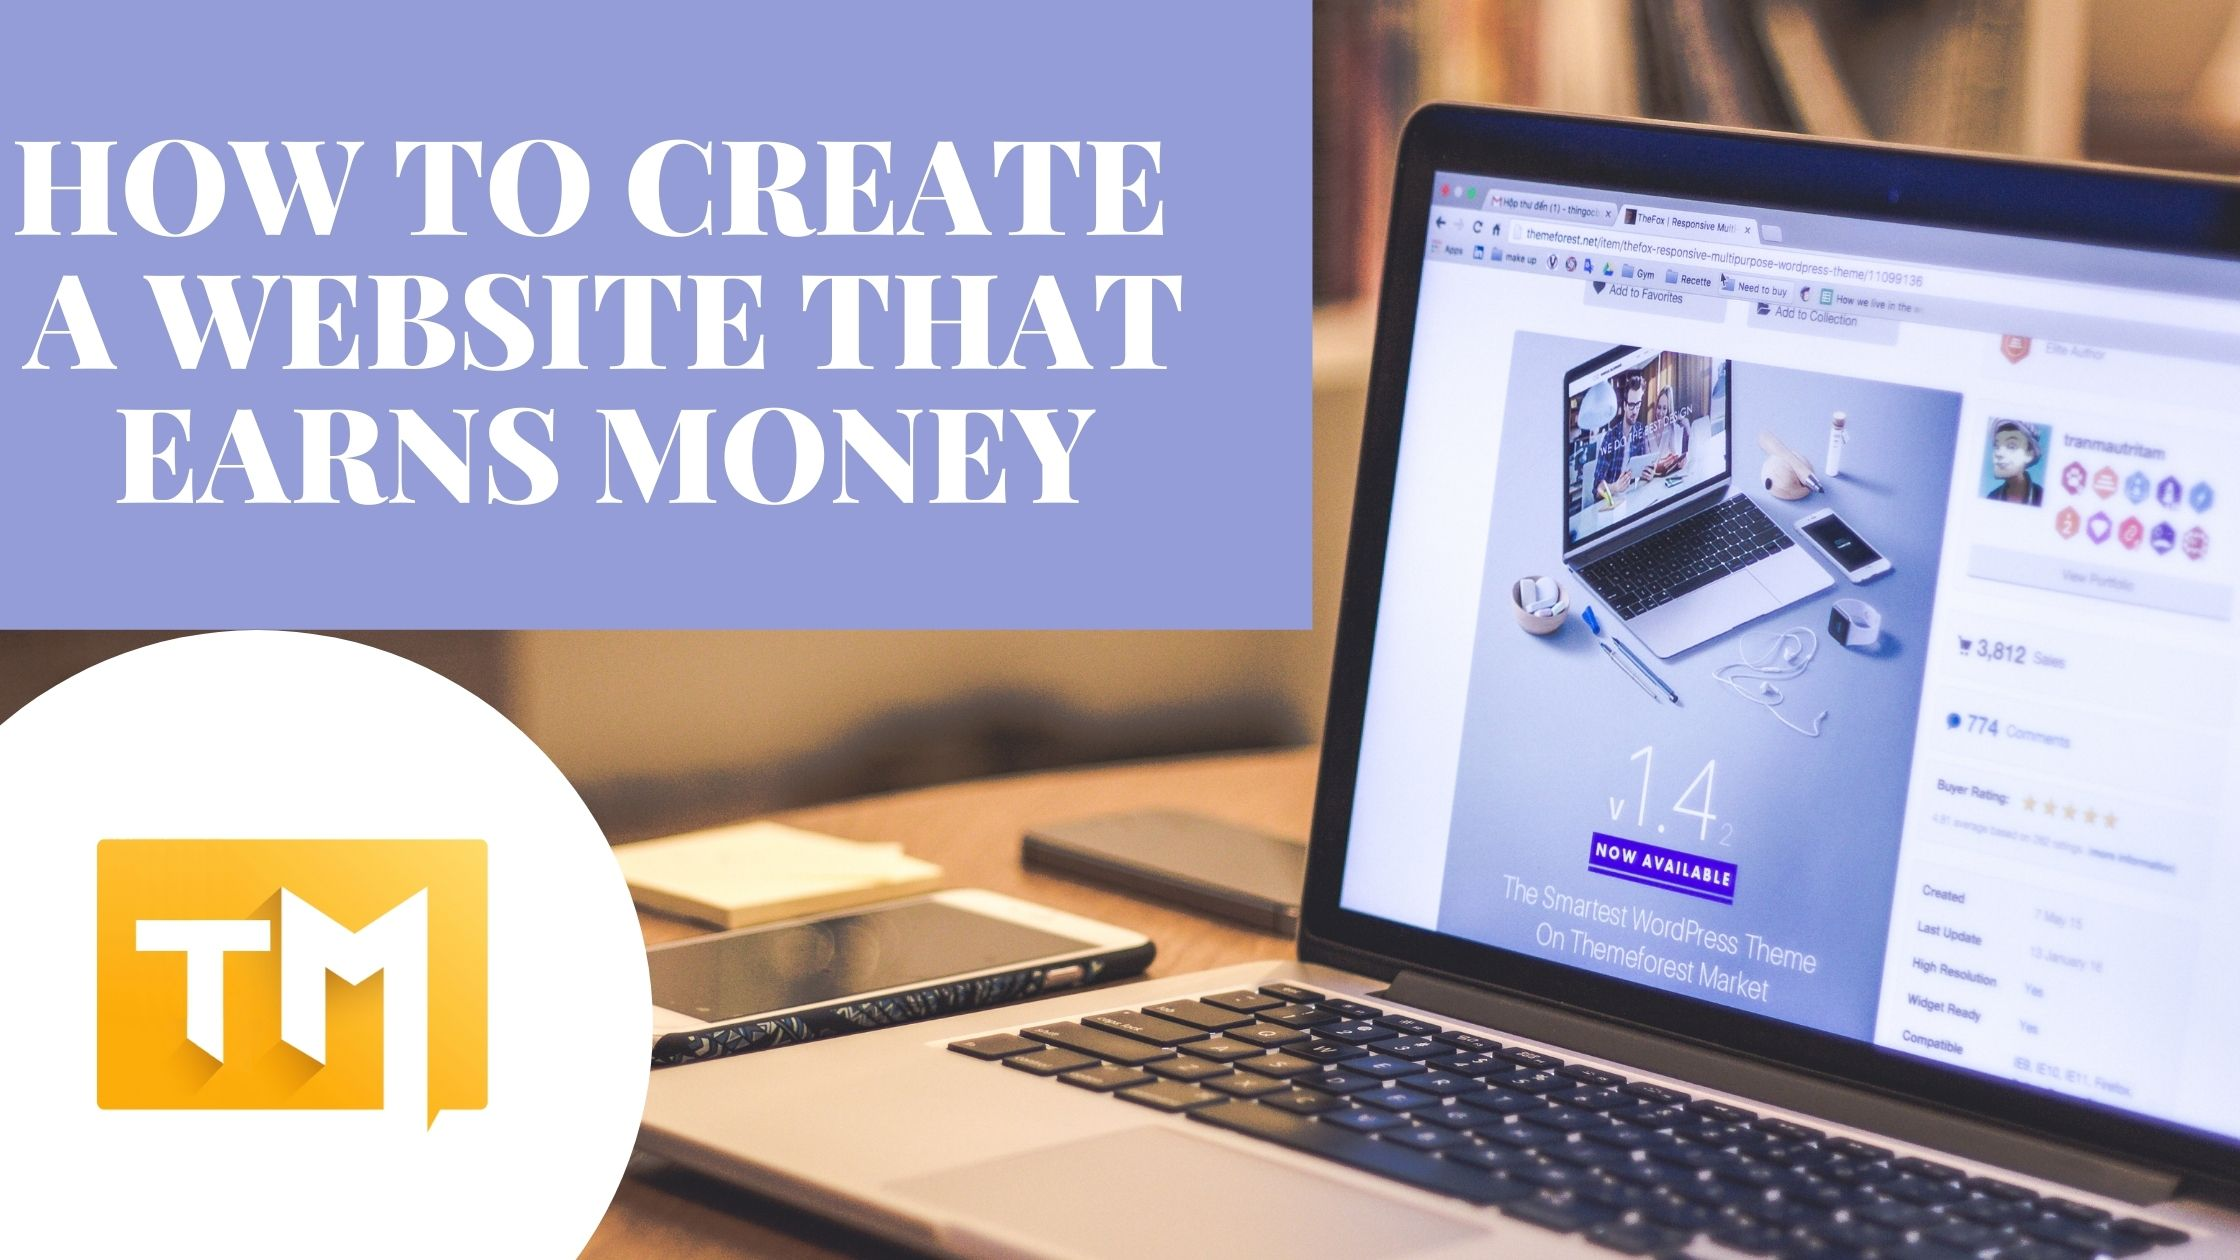 How to create a website that earns money